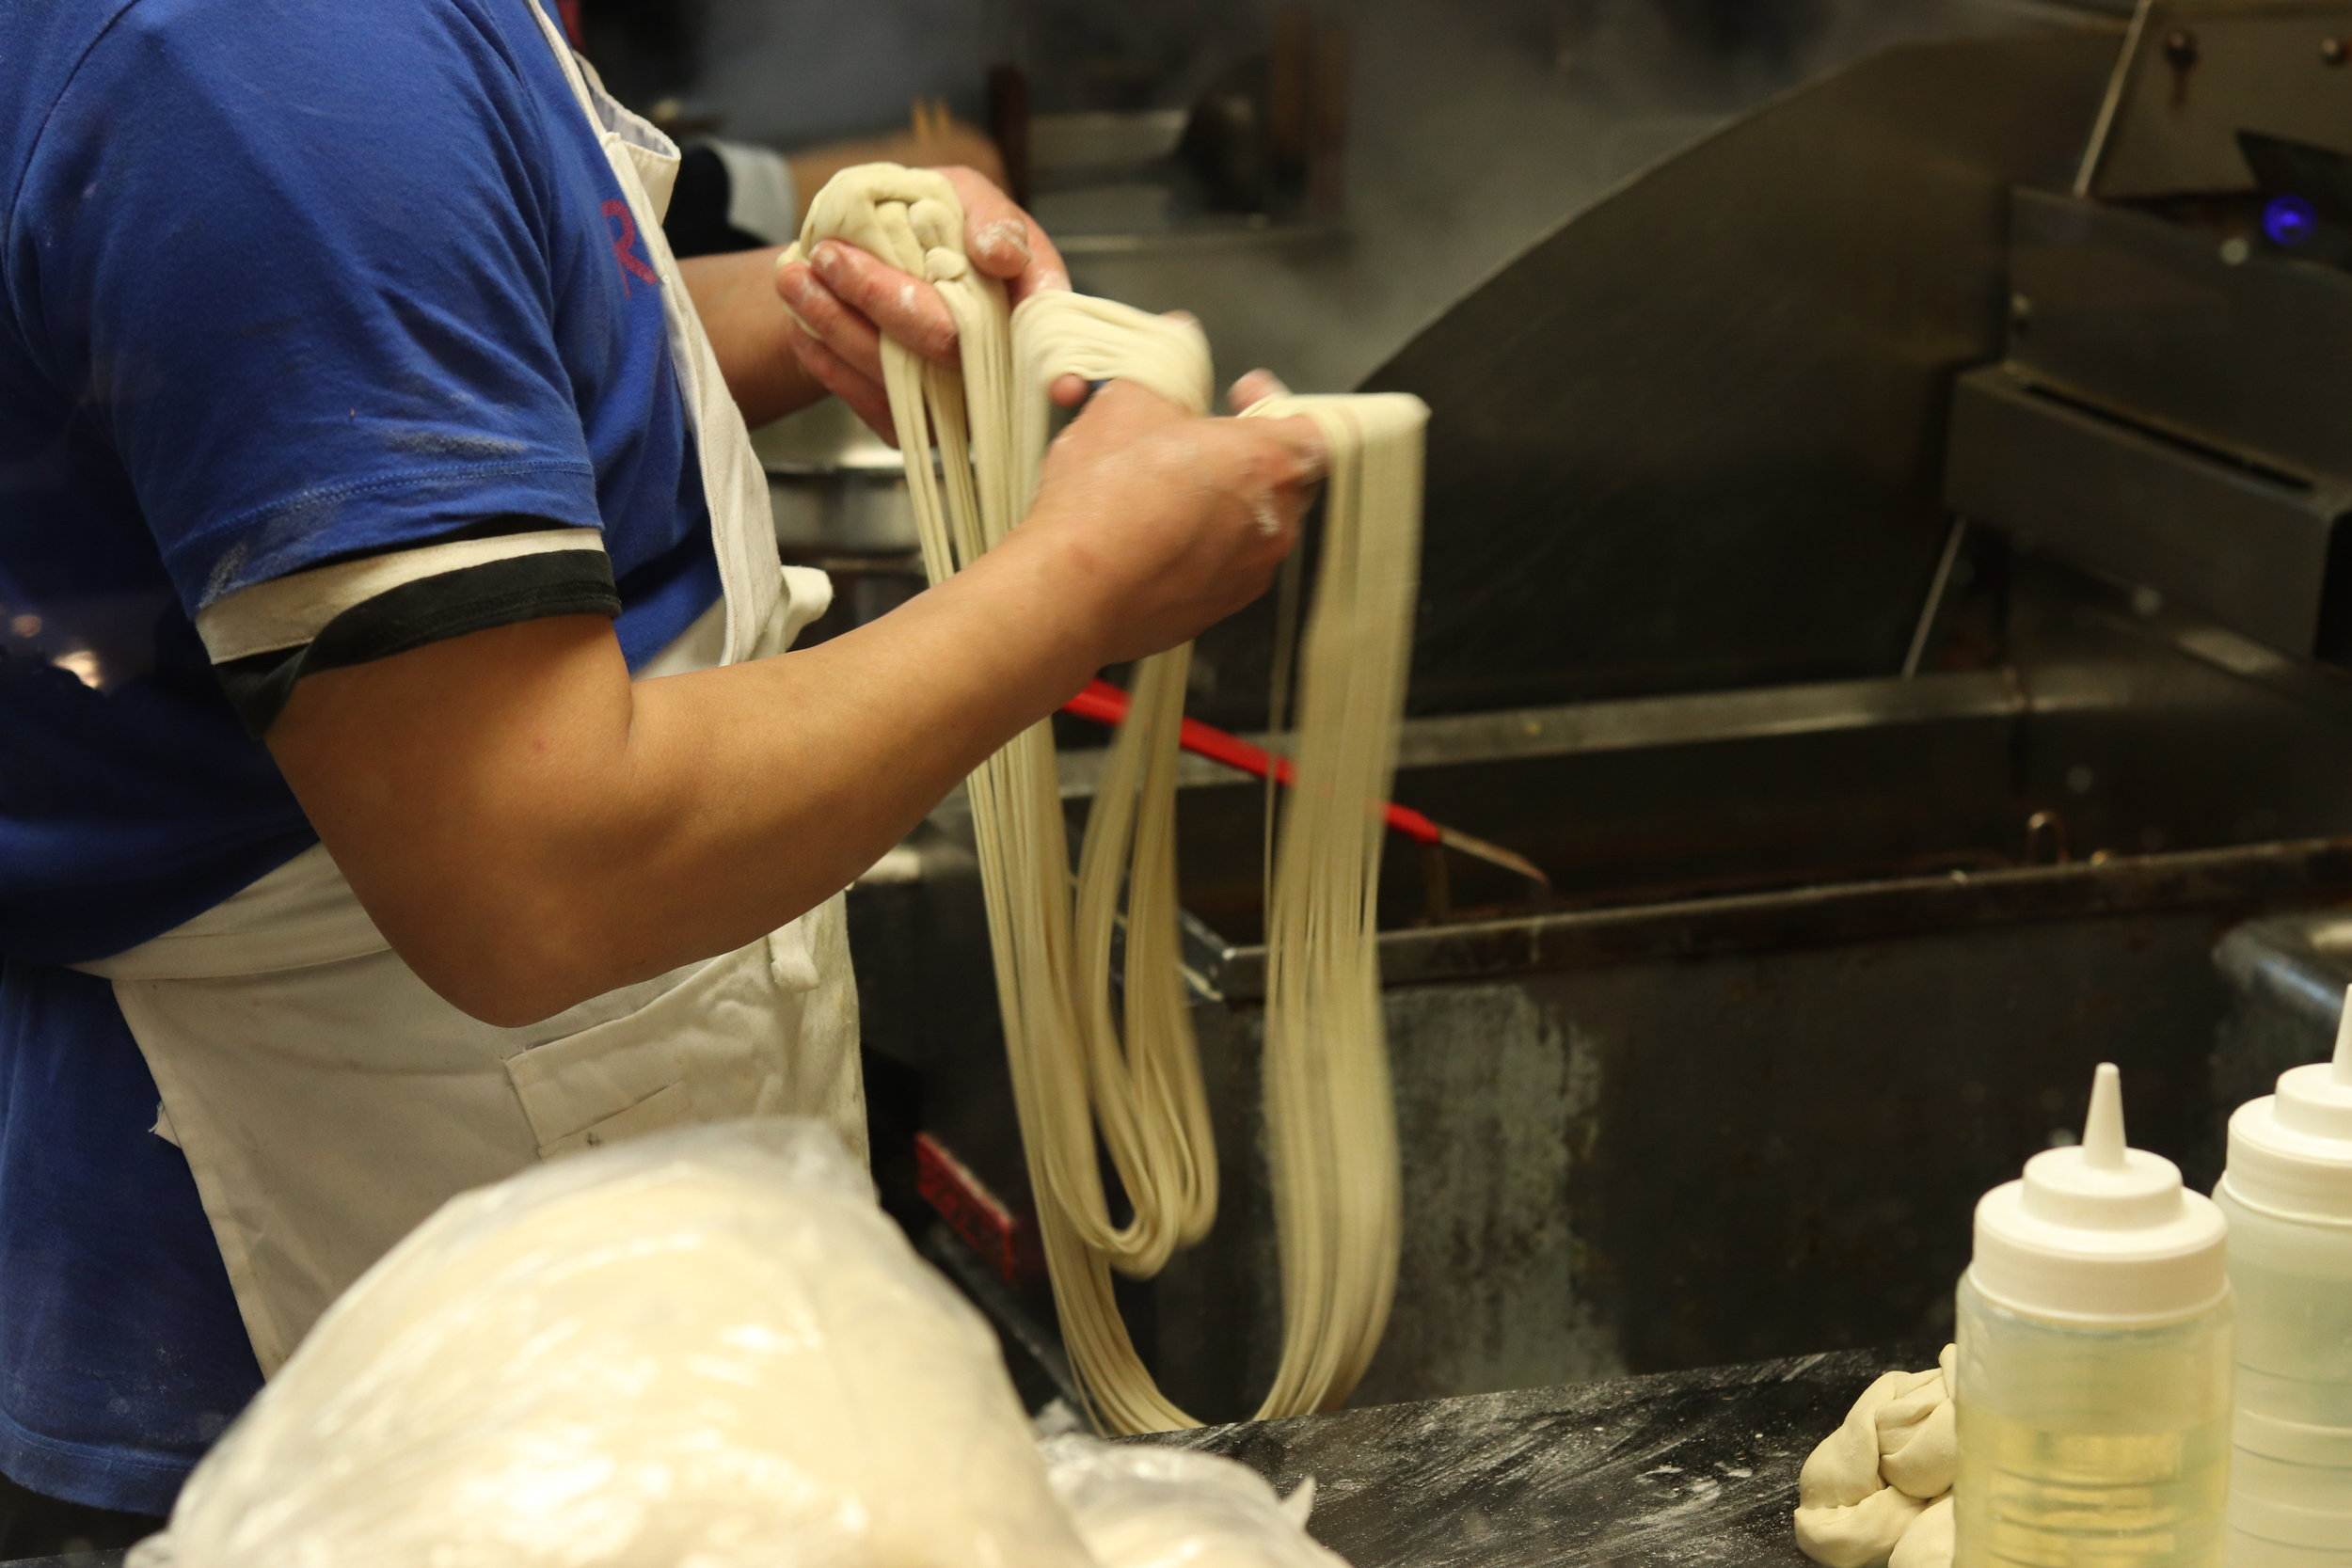 Pulling the hand drawn noodles